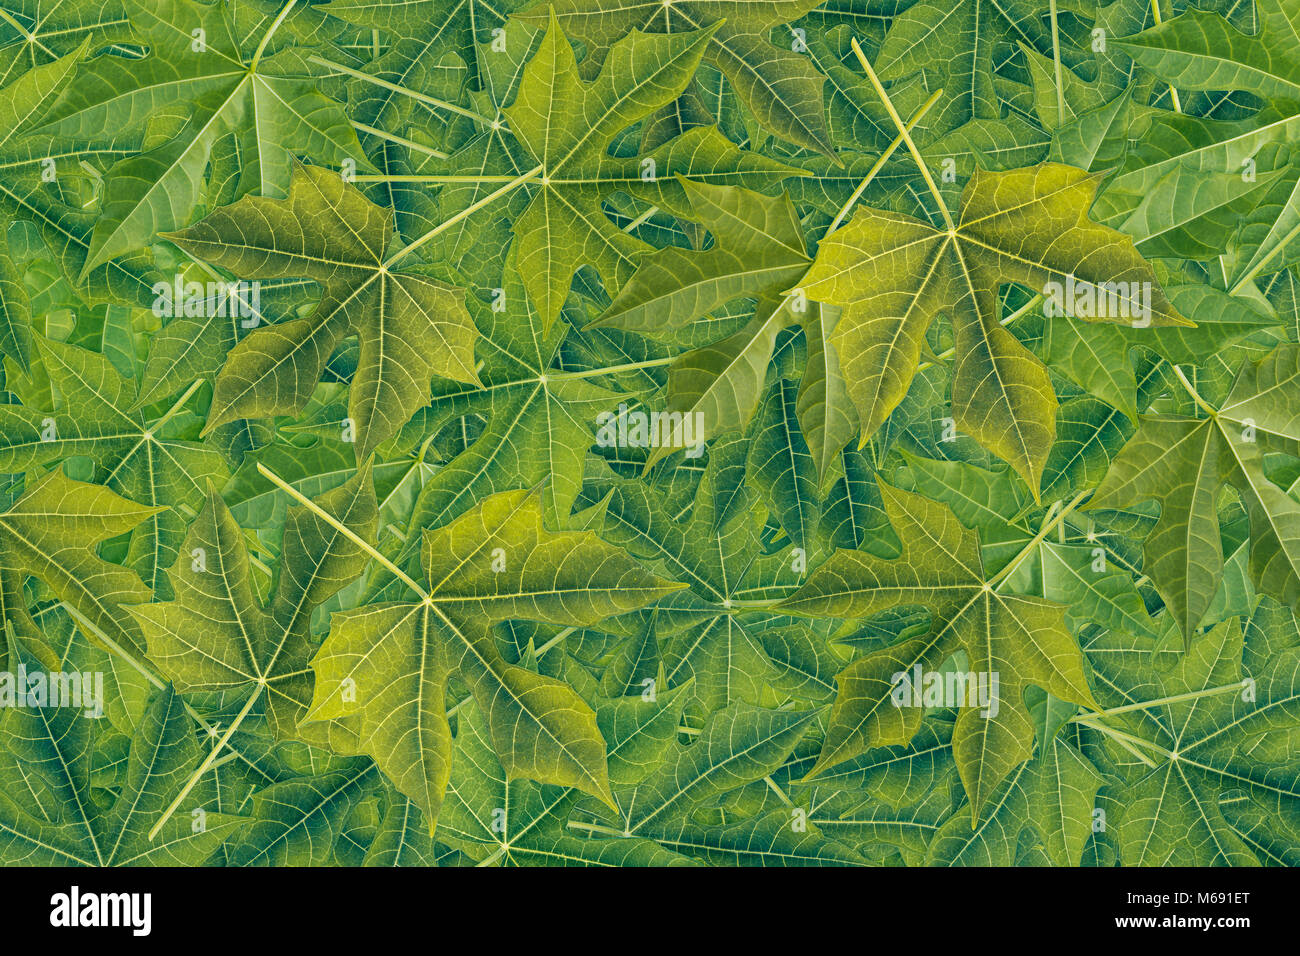 Herbal Wallpaper Background And Wallpaper Or Texture Of Pile Of Green Leaves Chaya